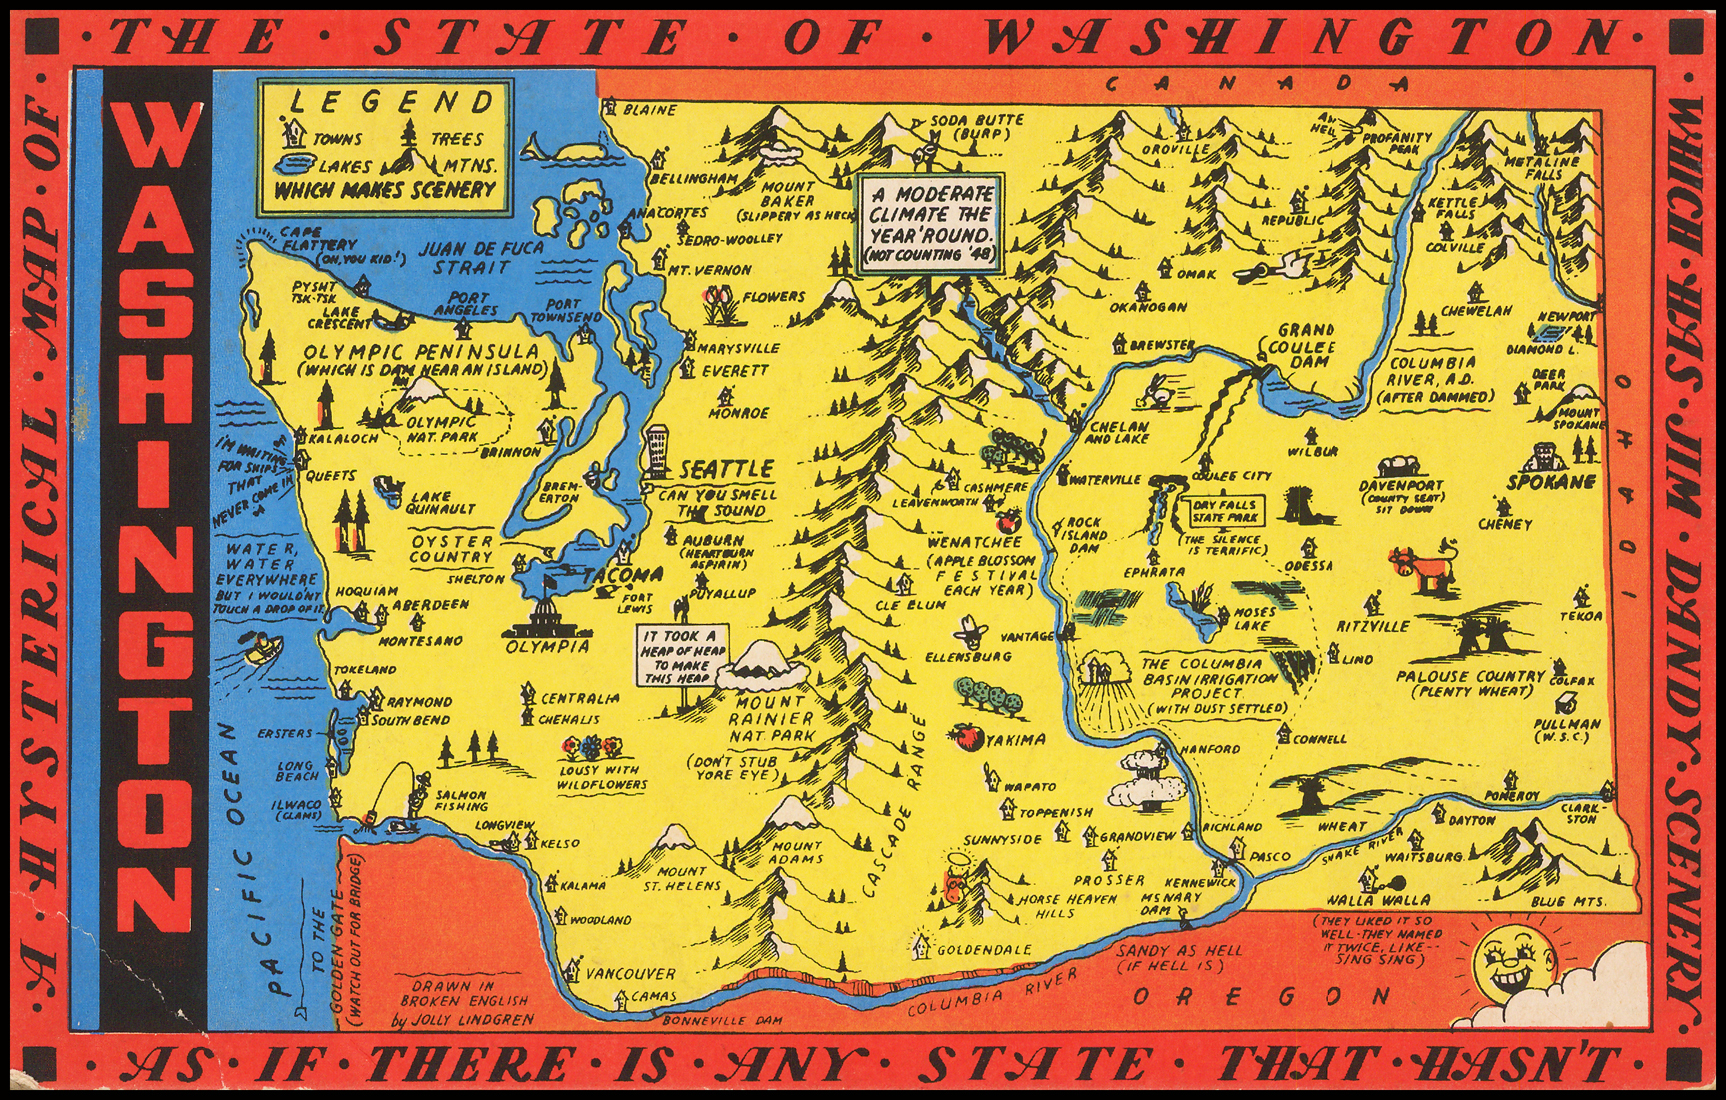 A Hysterical Map Of The State of Washington - Which Has Jim ... on topography of states, unification of states, blank map states, region of states, painting of states, 4 corners states, midwest region states, chart of states, death penalty states, products of states, poster of states, globe of states, mississippi river states, atlas of states, latin america states, coat of arms of states, new jersey states, latitude of states, mid west states,